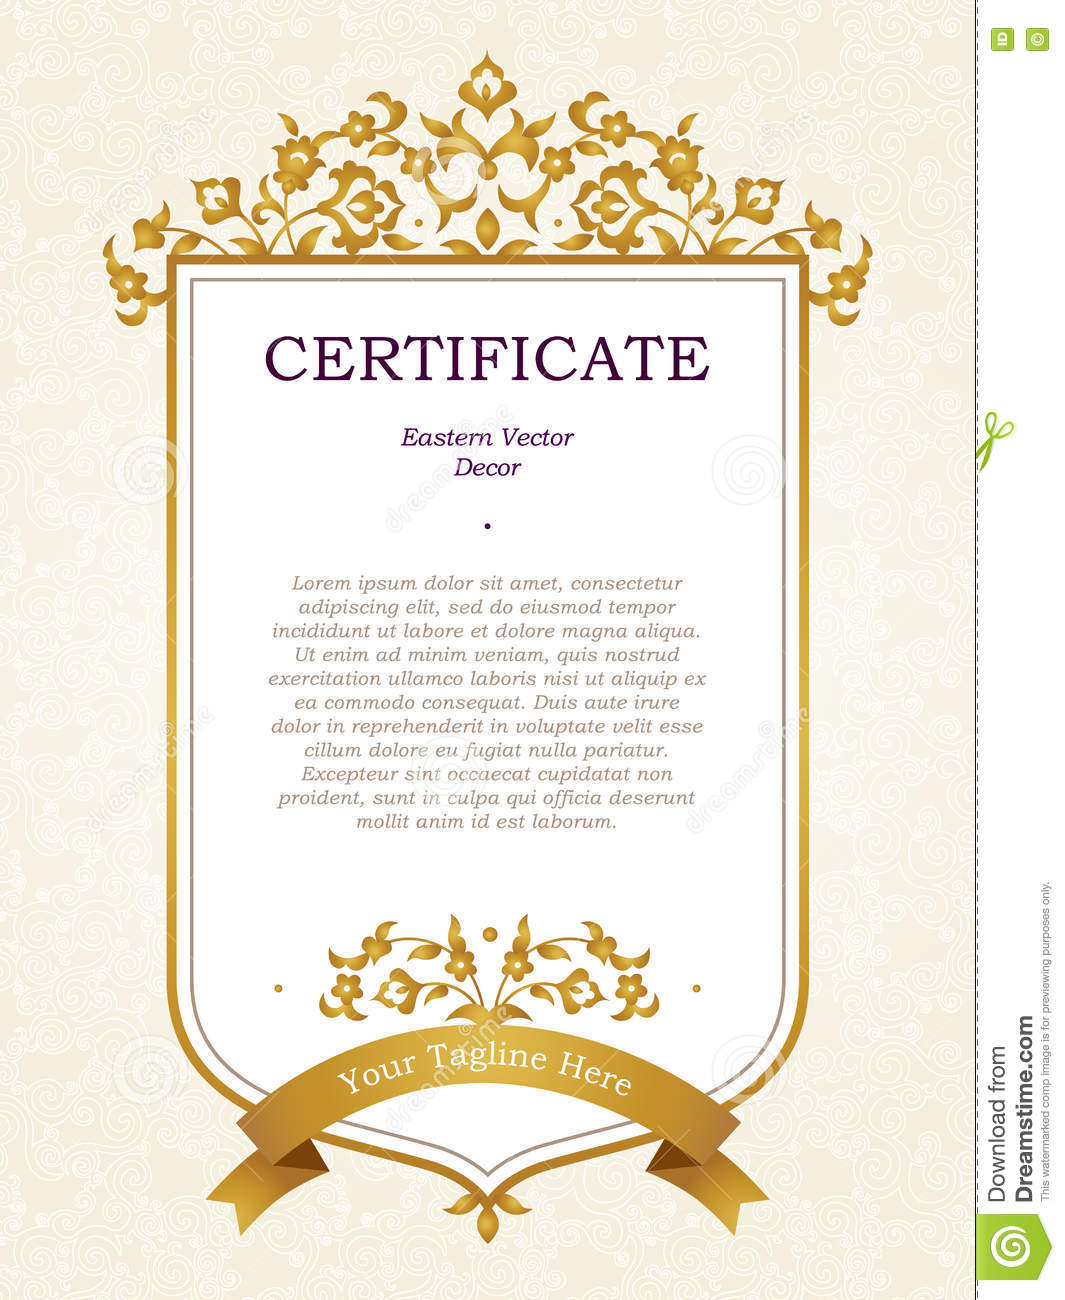 Elegant Marriage Certificate Template Golden Edition: Vector Certificate Template In Eastern Style. Stock Vector